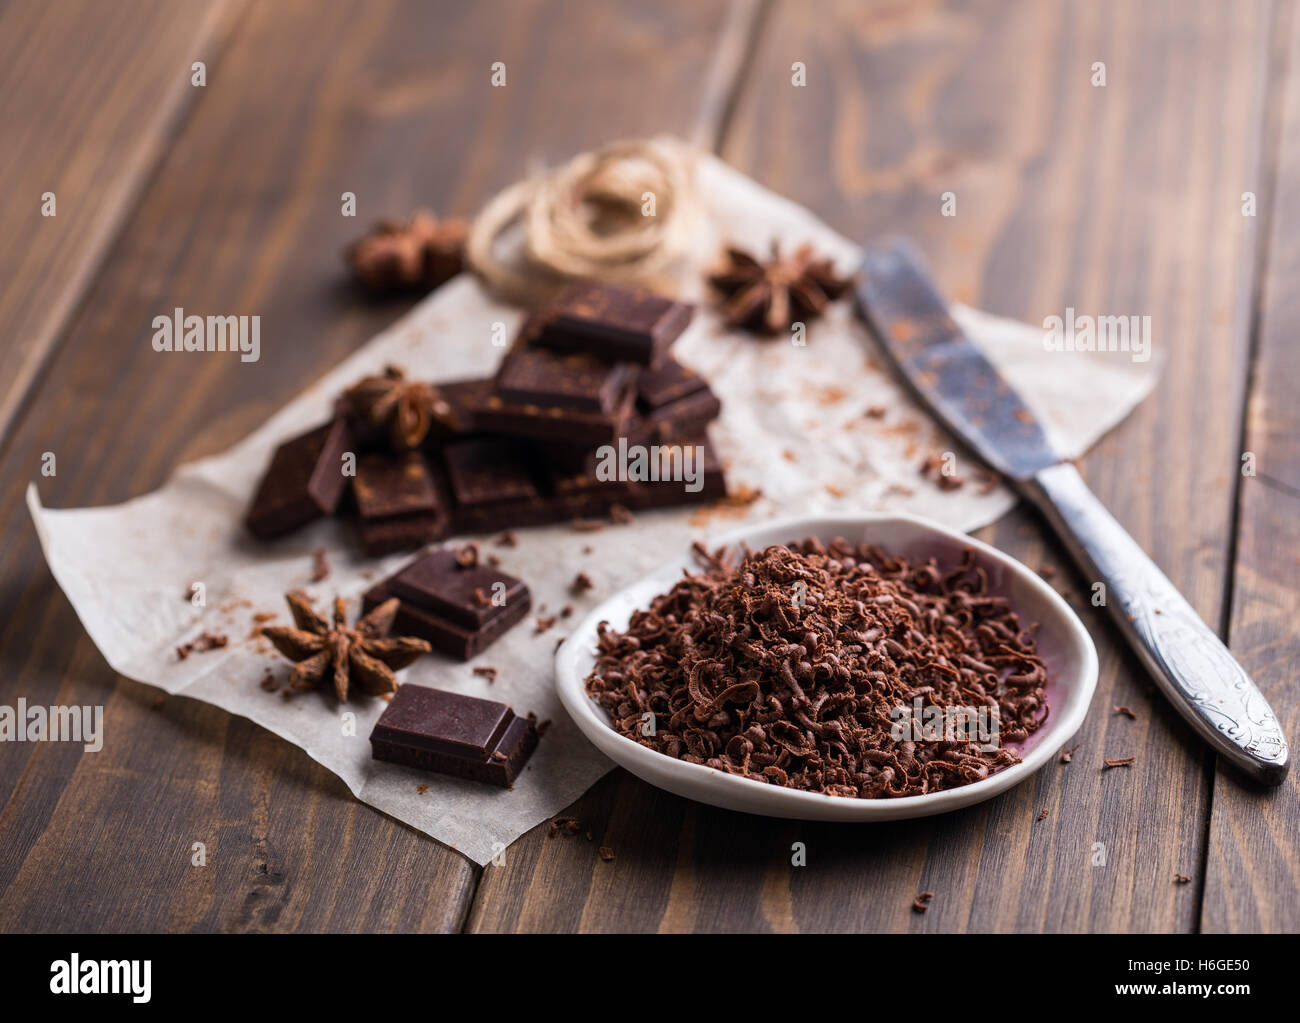 Heap of broken chocolate pieces and some grated chocolate - Stock Image